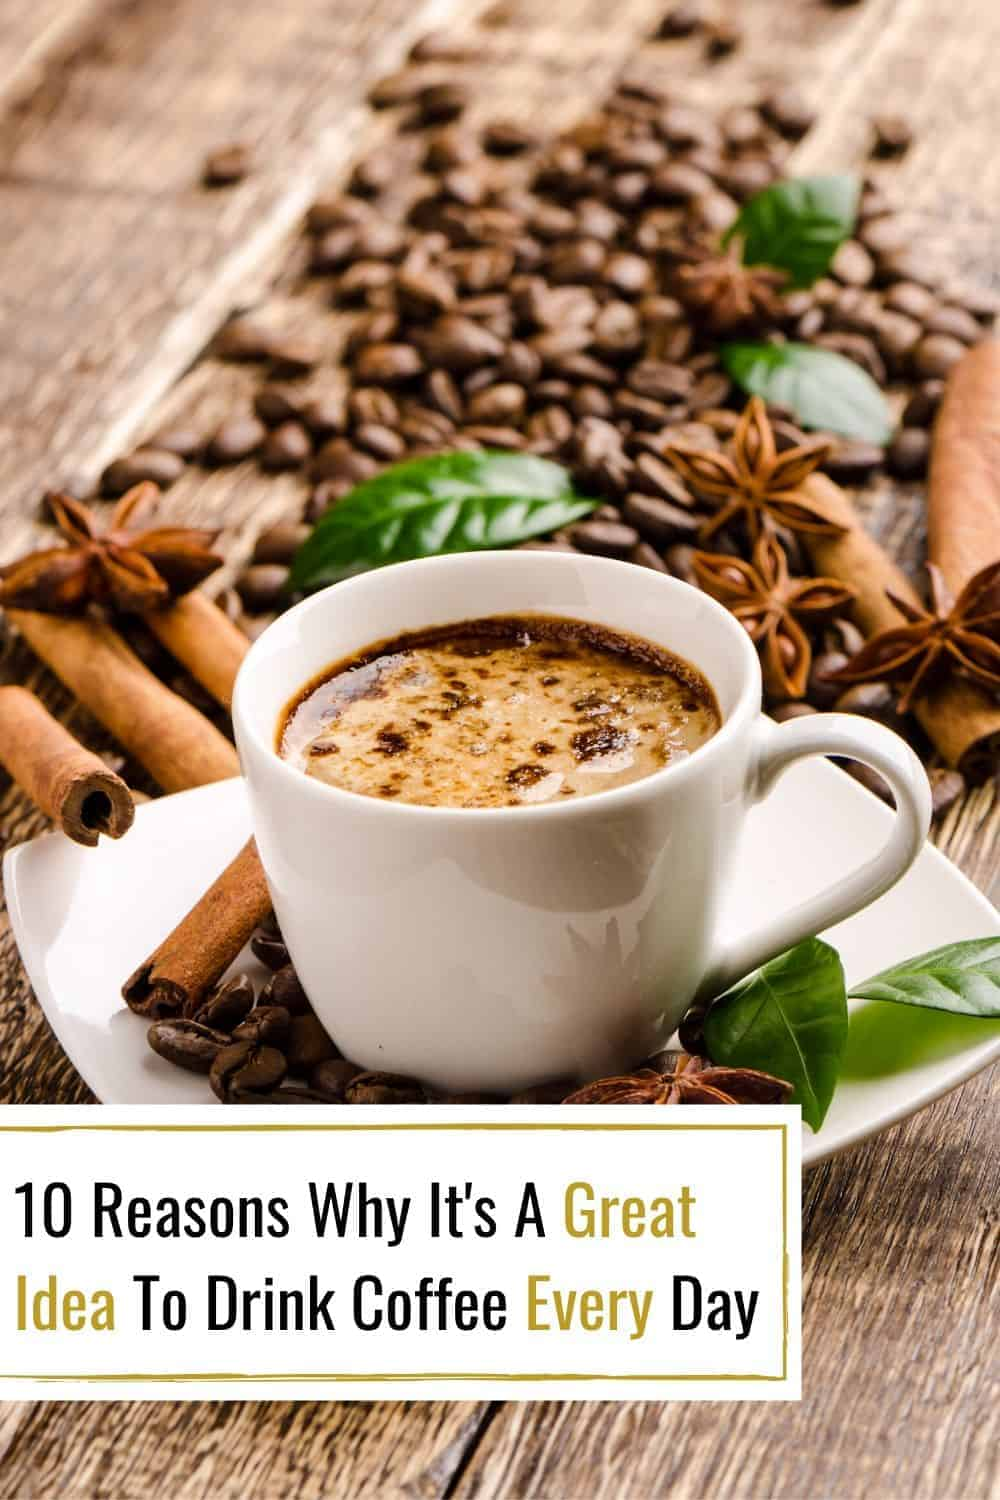 10 Reasons Why It's A Great Idea To Drink Coffee Every Day